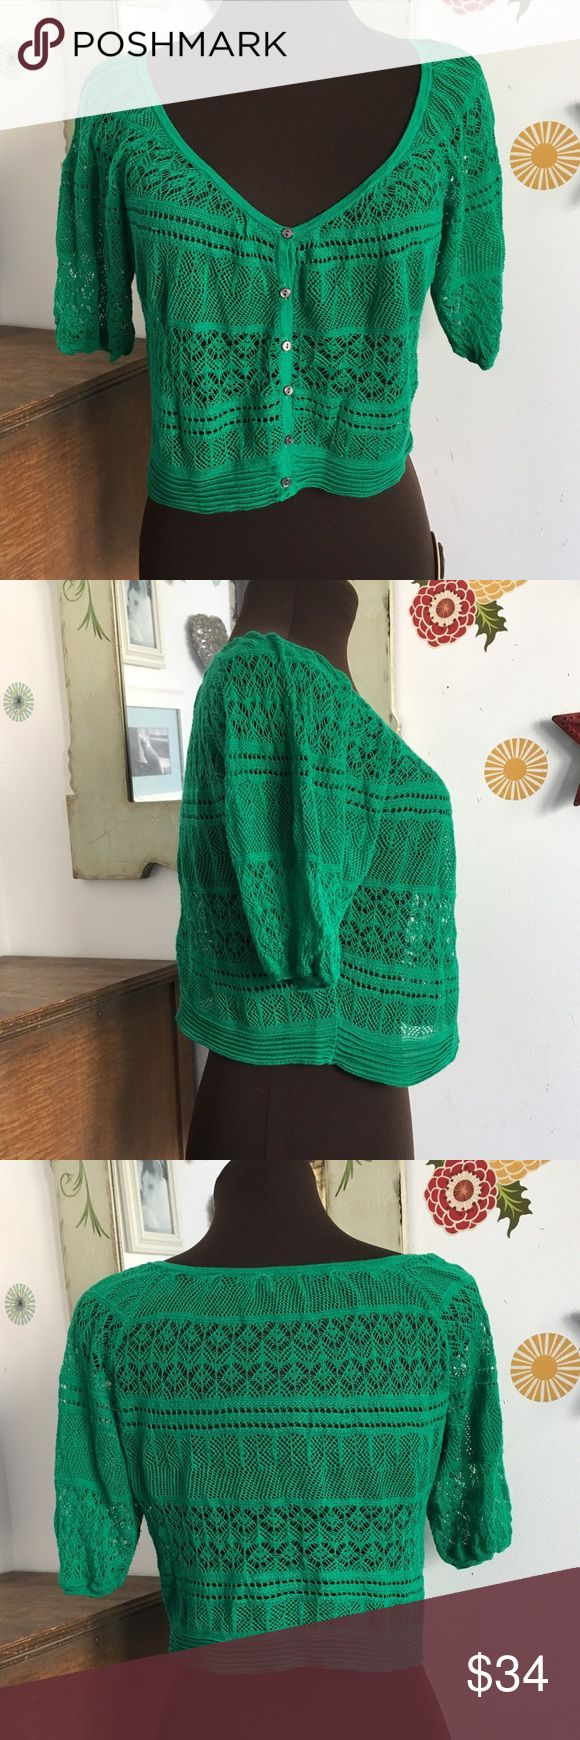 """Free People Cardigan Open Knit Button Down Sweater Beautiful vibrant green cardigan is perfect for spring! Lightweight and delicate knit is great to wear over a sleeveless top to the office or with a pretty dress on a night out. Size tag is cut out but measures 44"""" at the bust and is 17"""" long. Free People Sweaters Cardigans"""